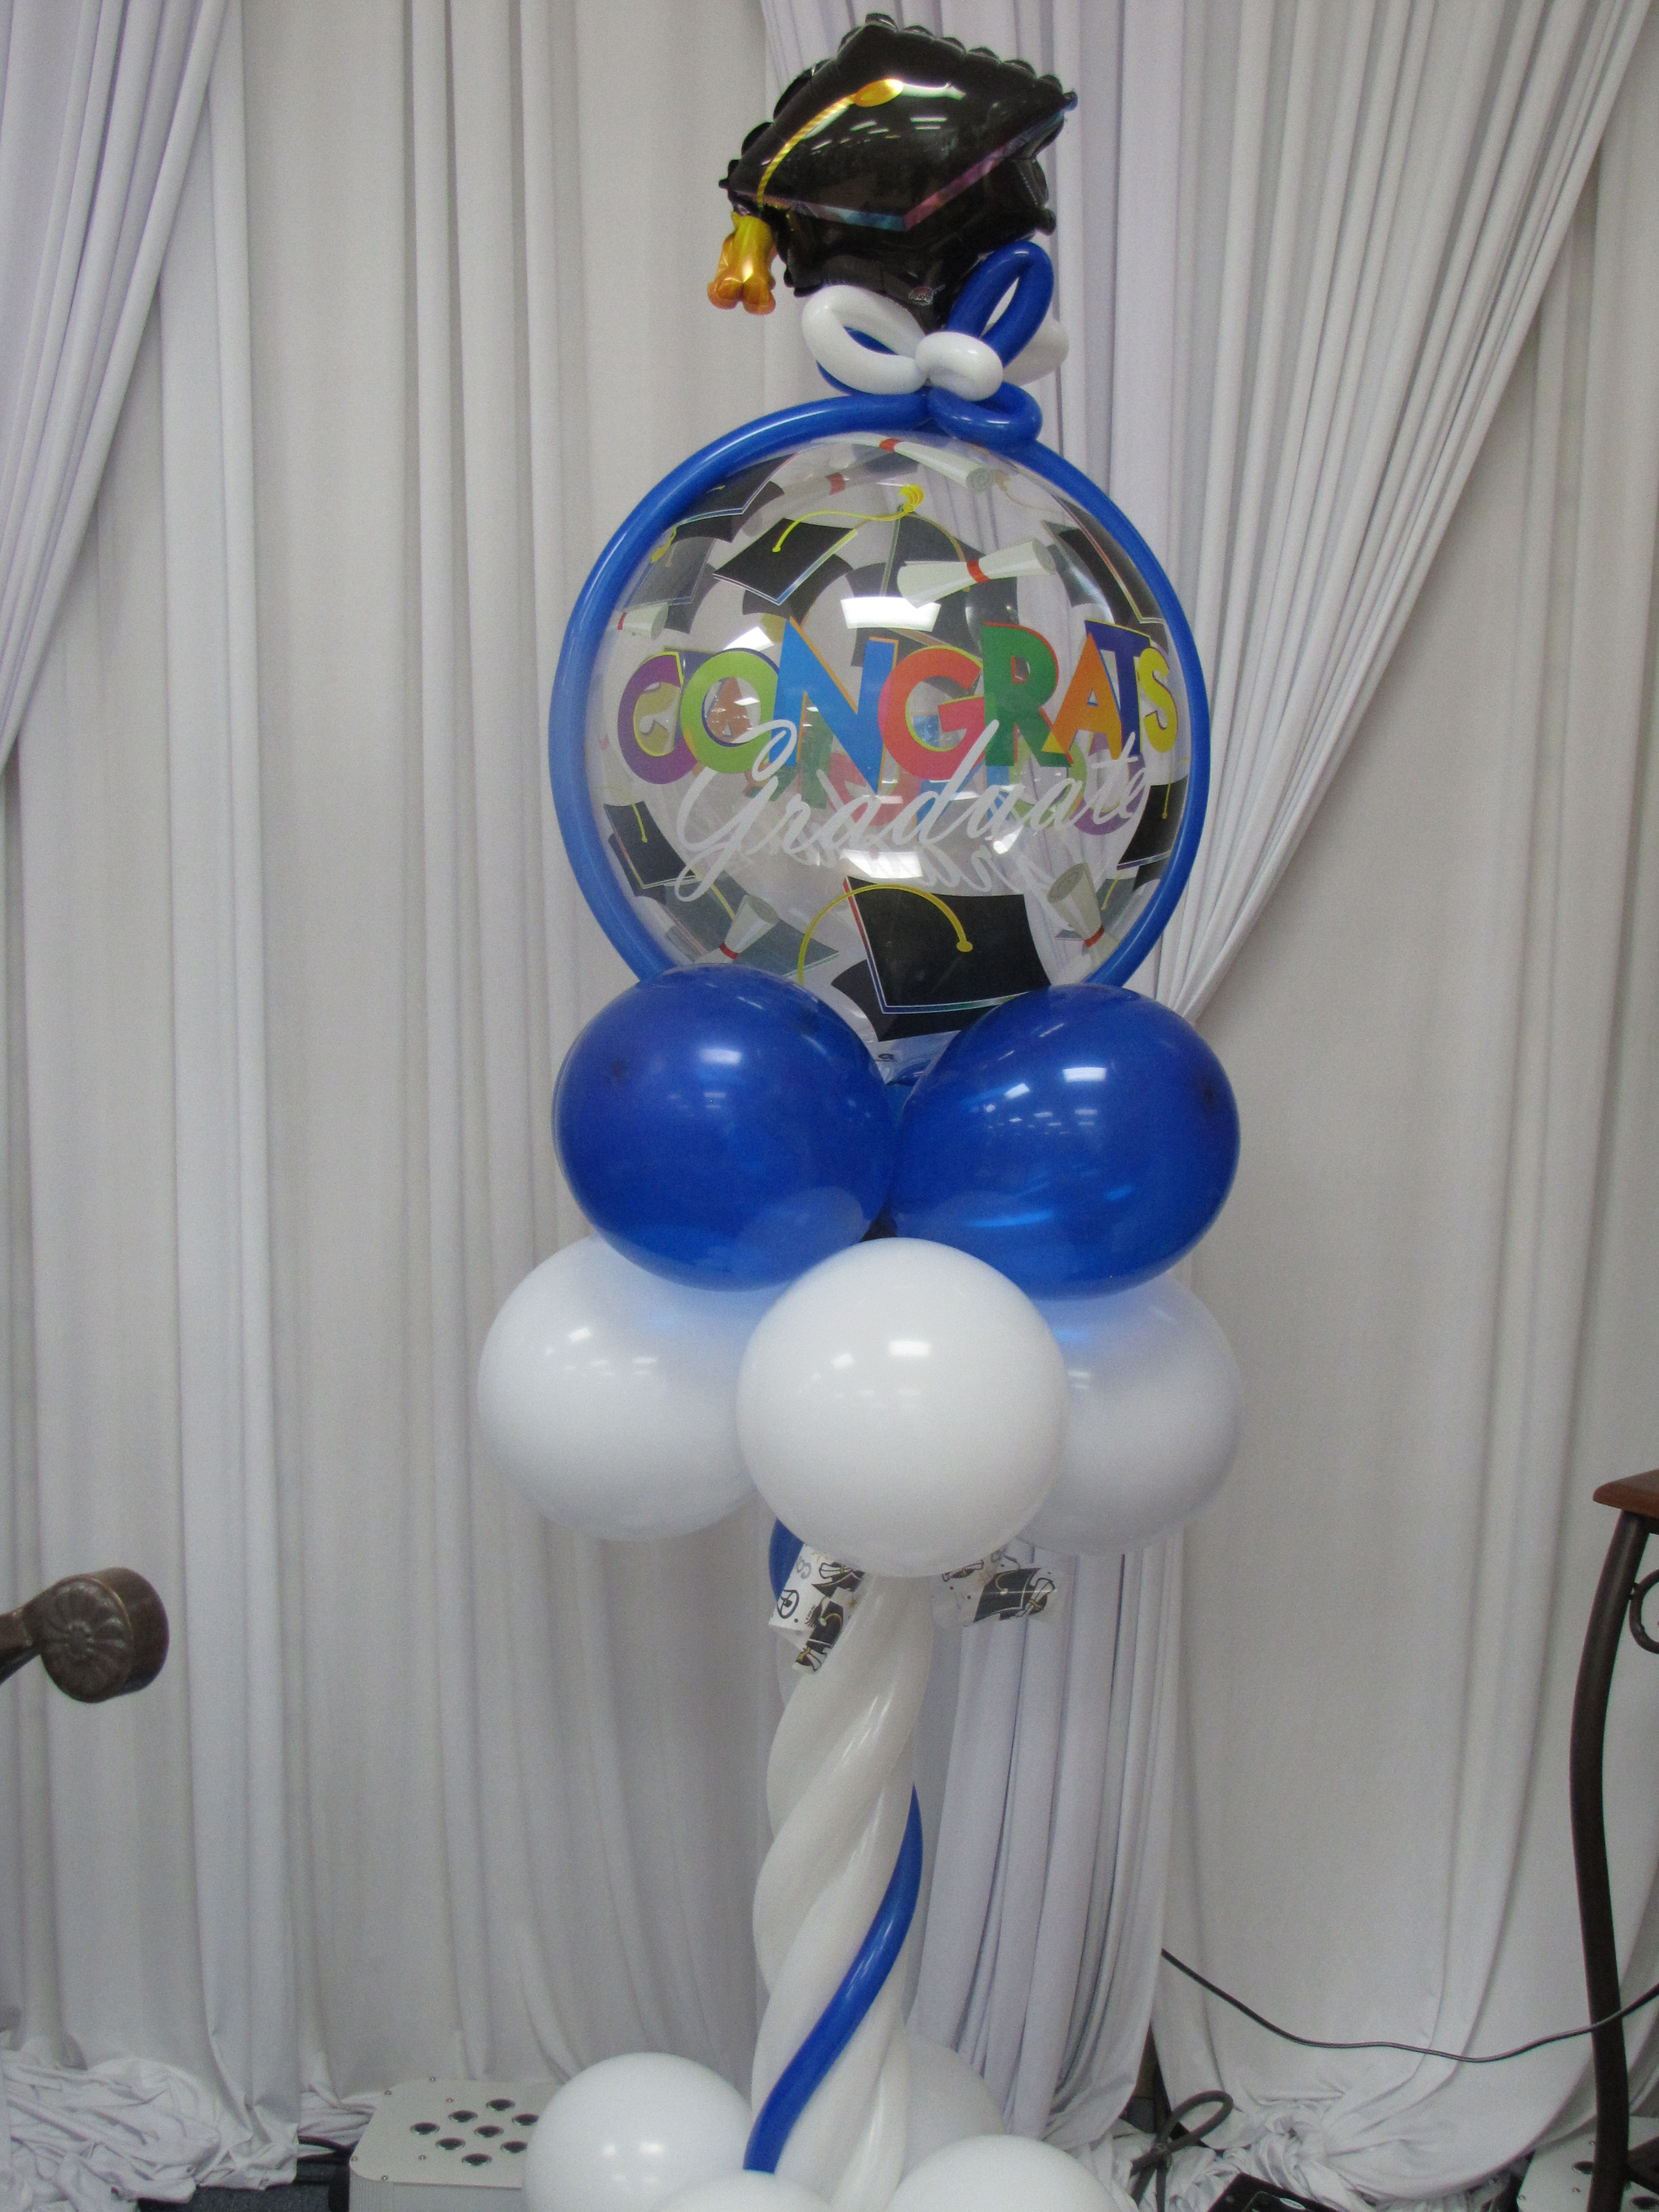 Graduation season balloon decor amytheballoonlady for Balloon decoration accessories